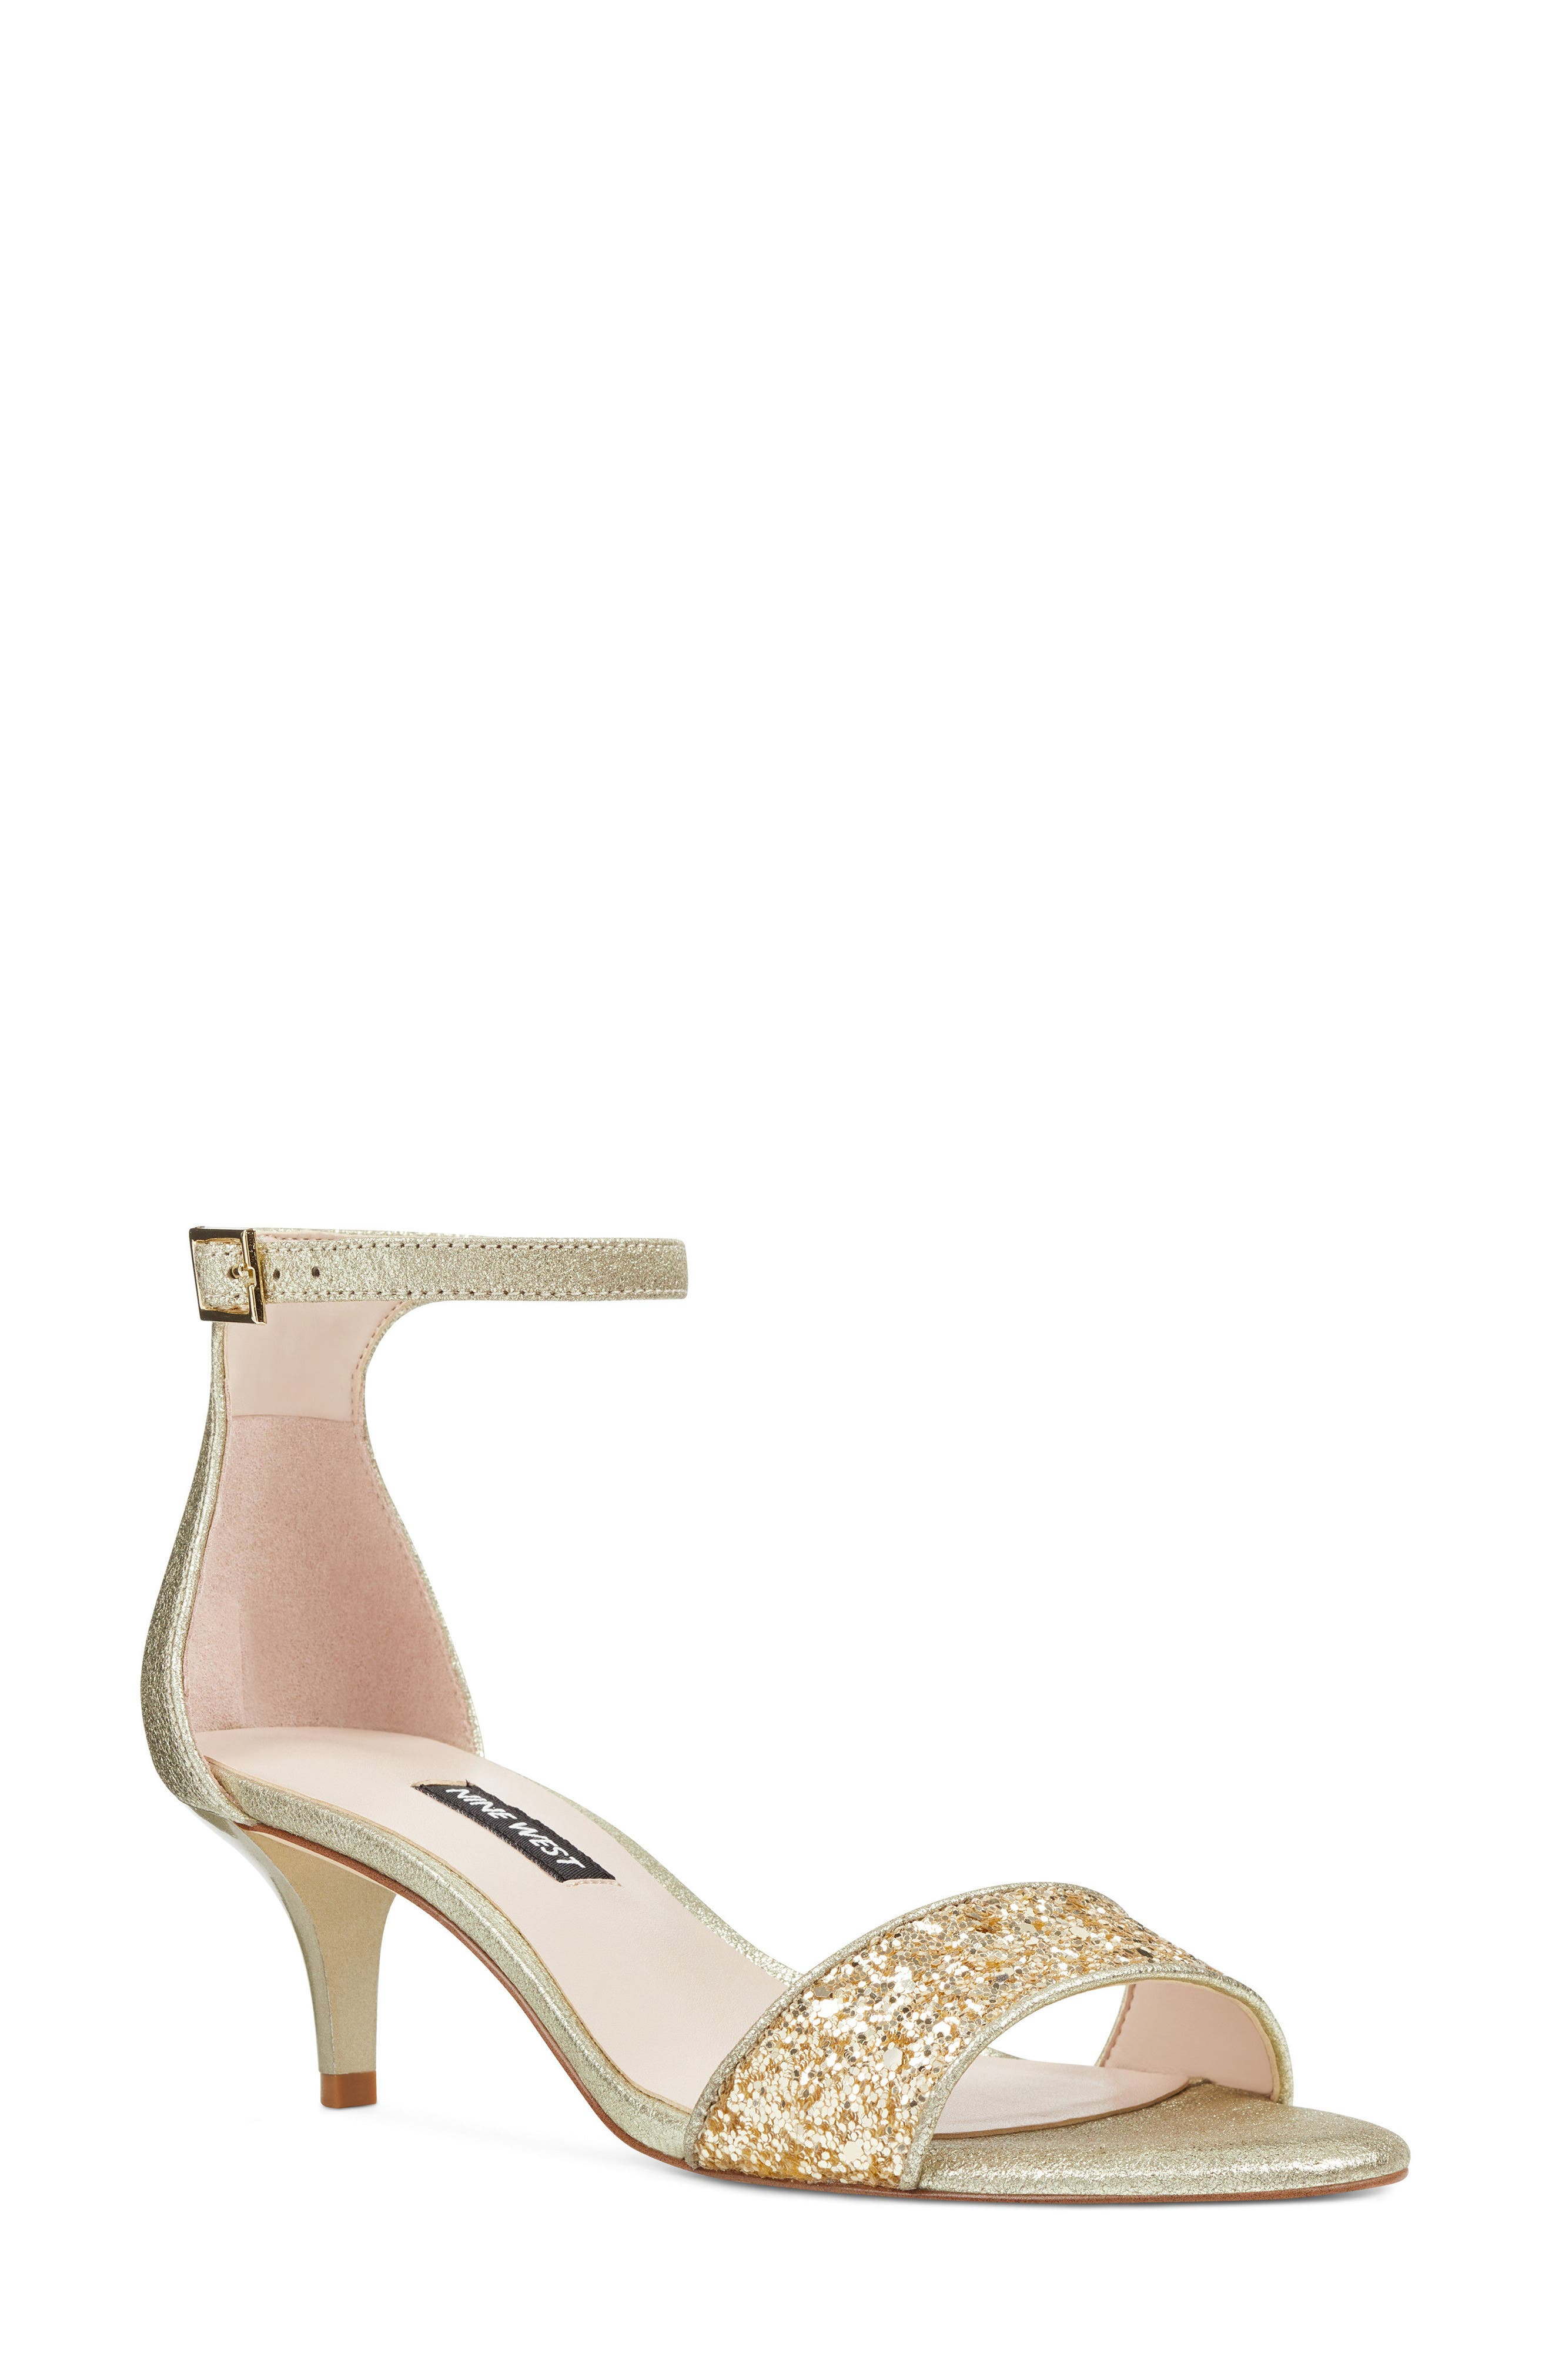 Main Image - Nine West 'Leisa' Ankle Strap Sandal (Women)